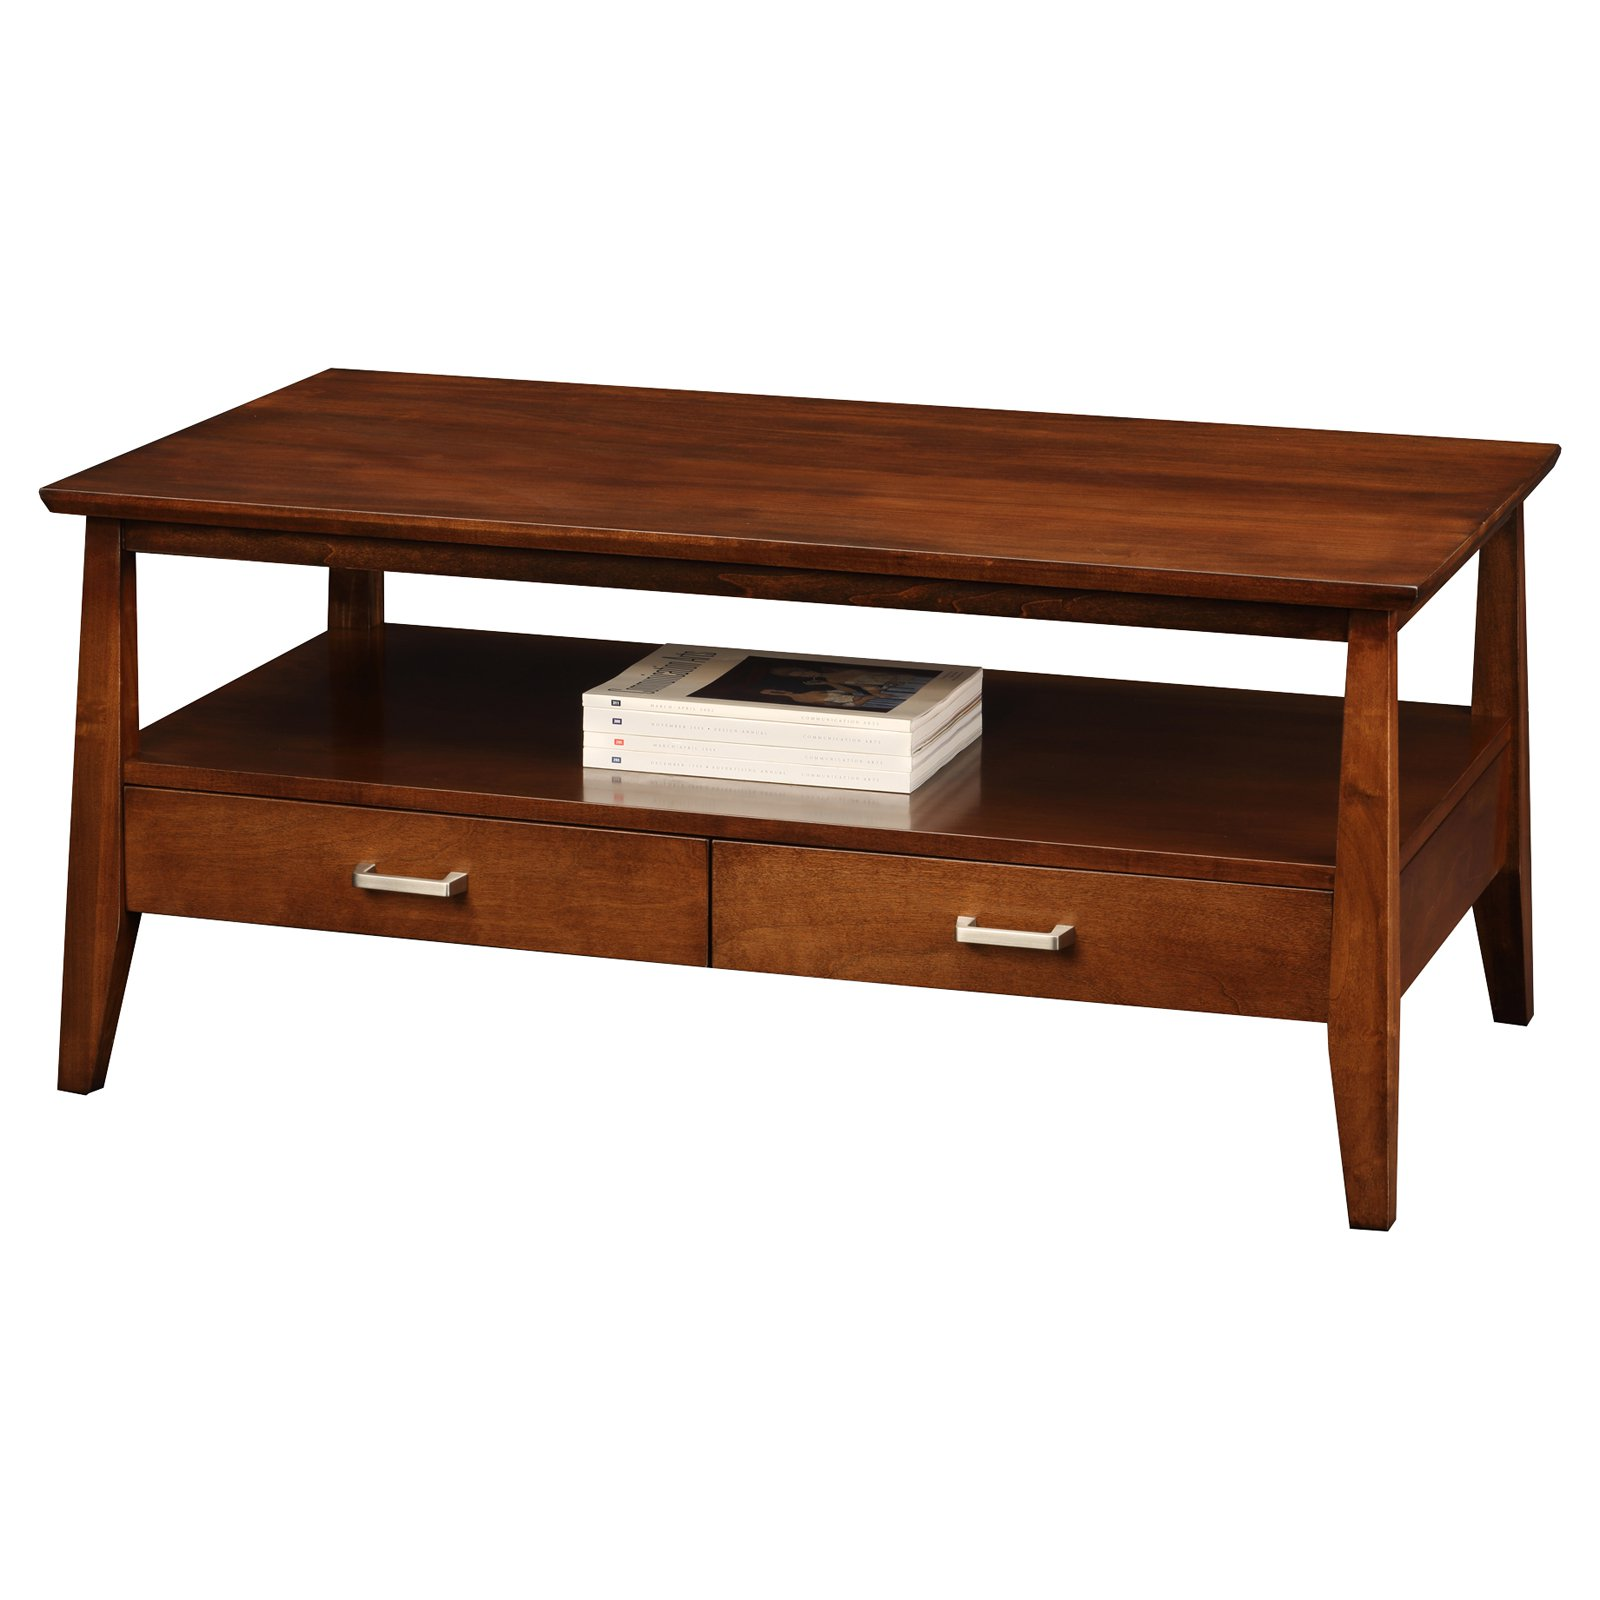 Leick Delton Two Drawer Storage Solid Wood Coffee Table in Sienna by Leick Furniture